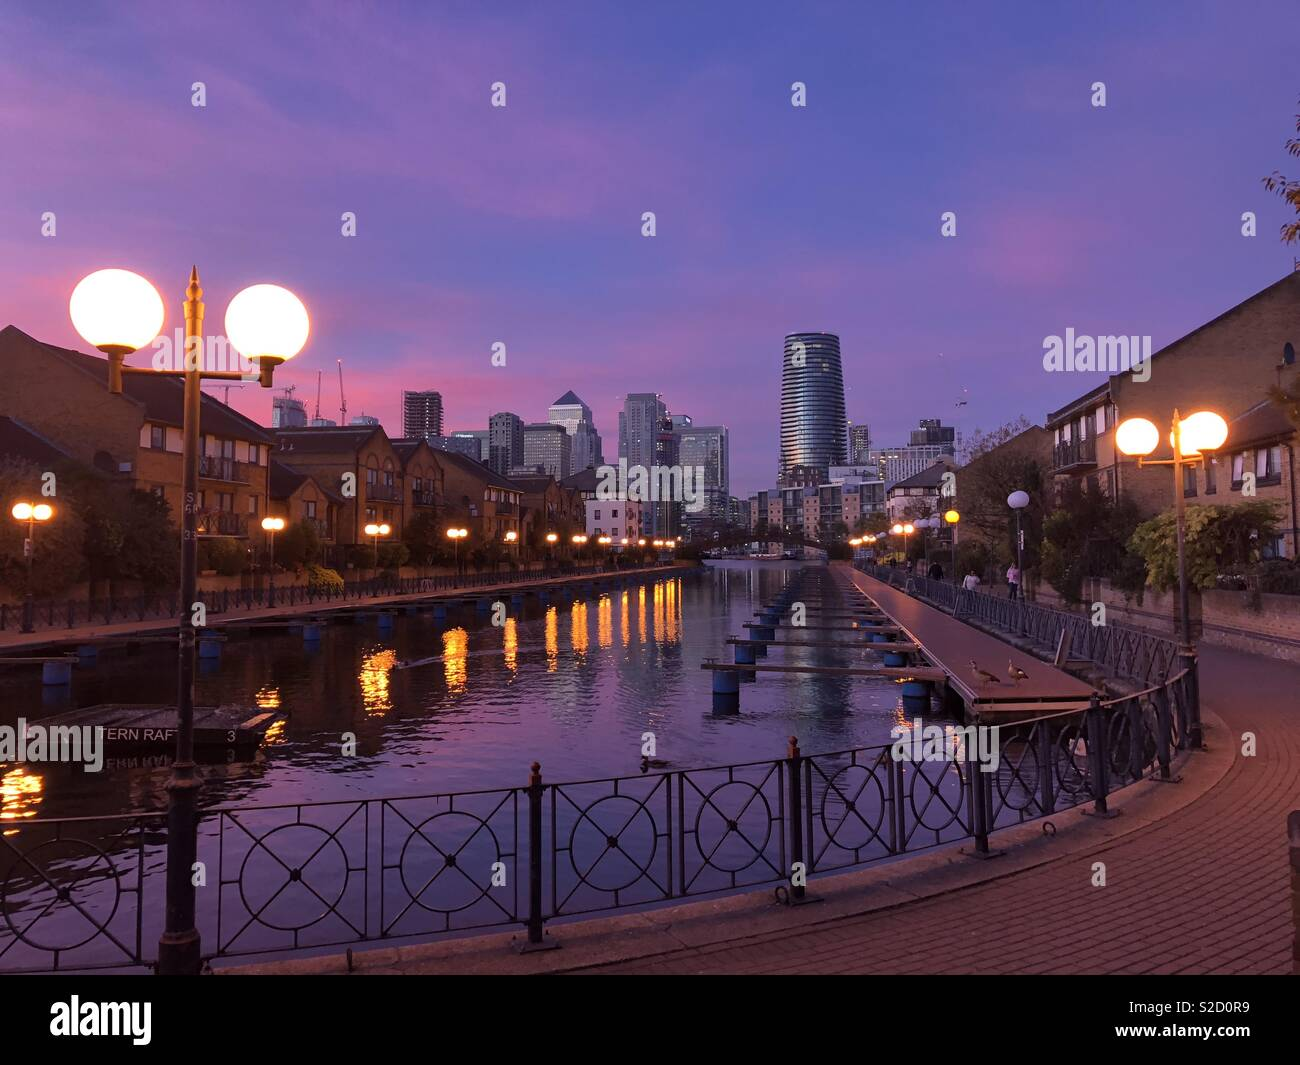 Millwall Outer Dock at Sunset, London Docklands - Stock Image